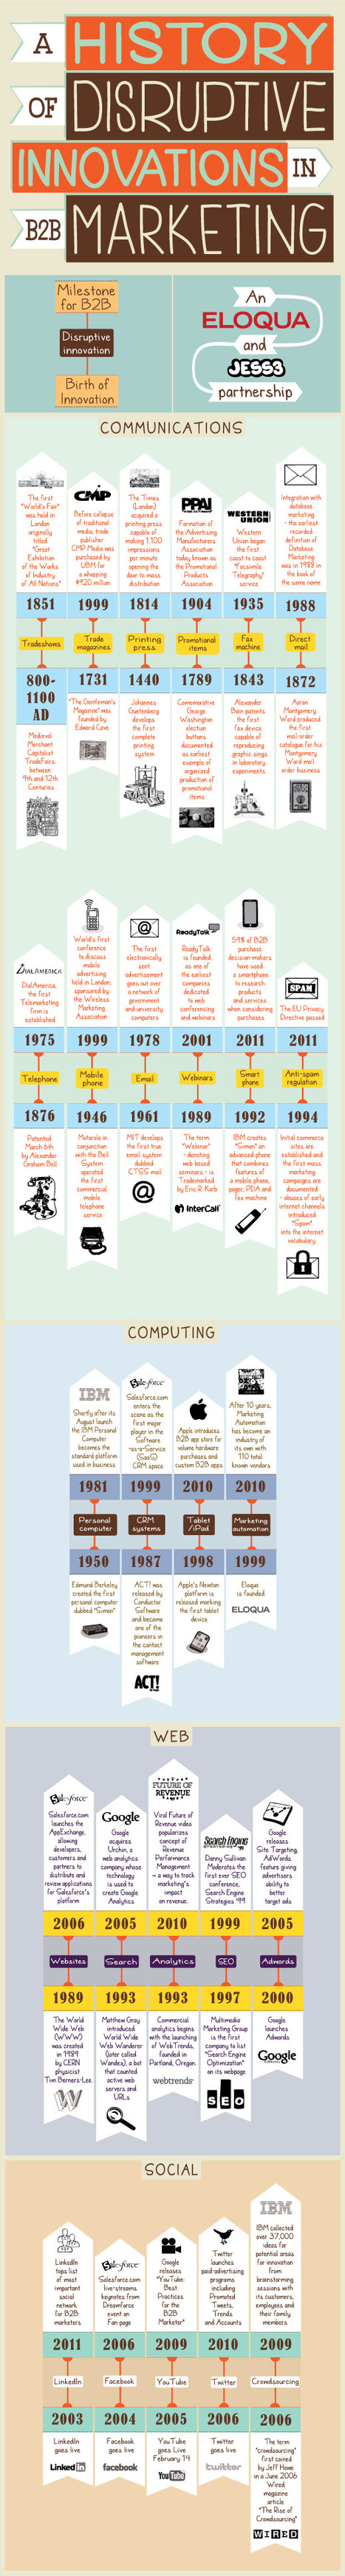 Infographic: A History of Disruptions in B2B Marketing | The Twinkie Awards | Scoop.it